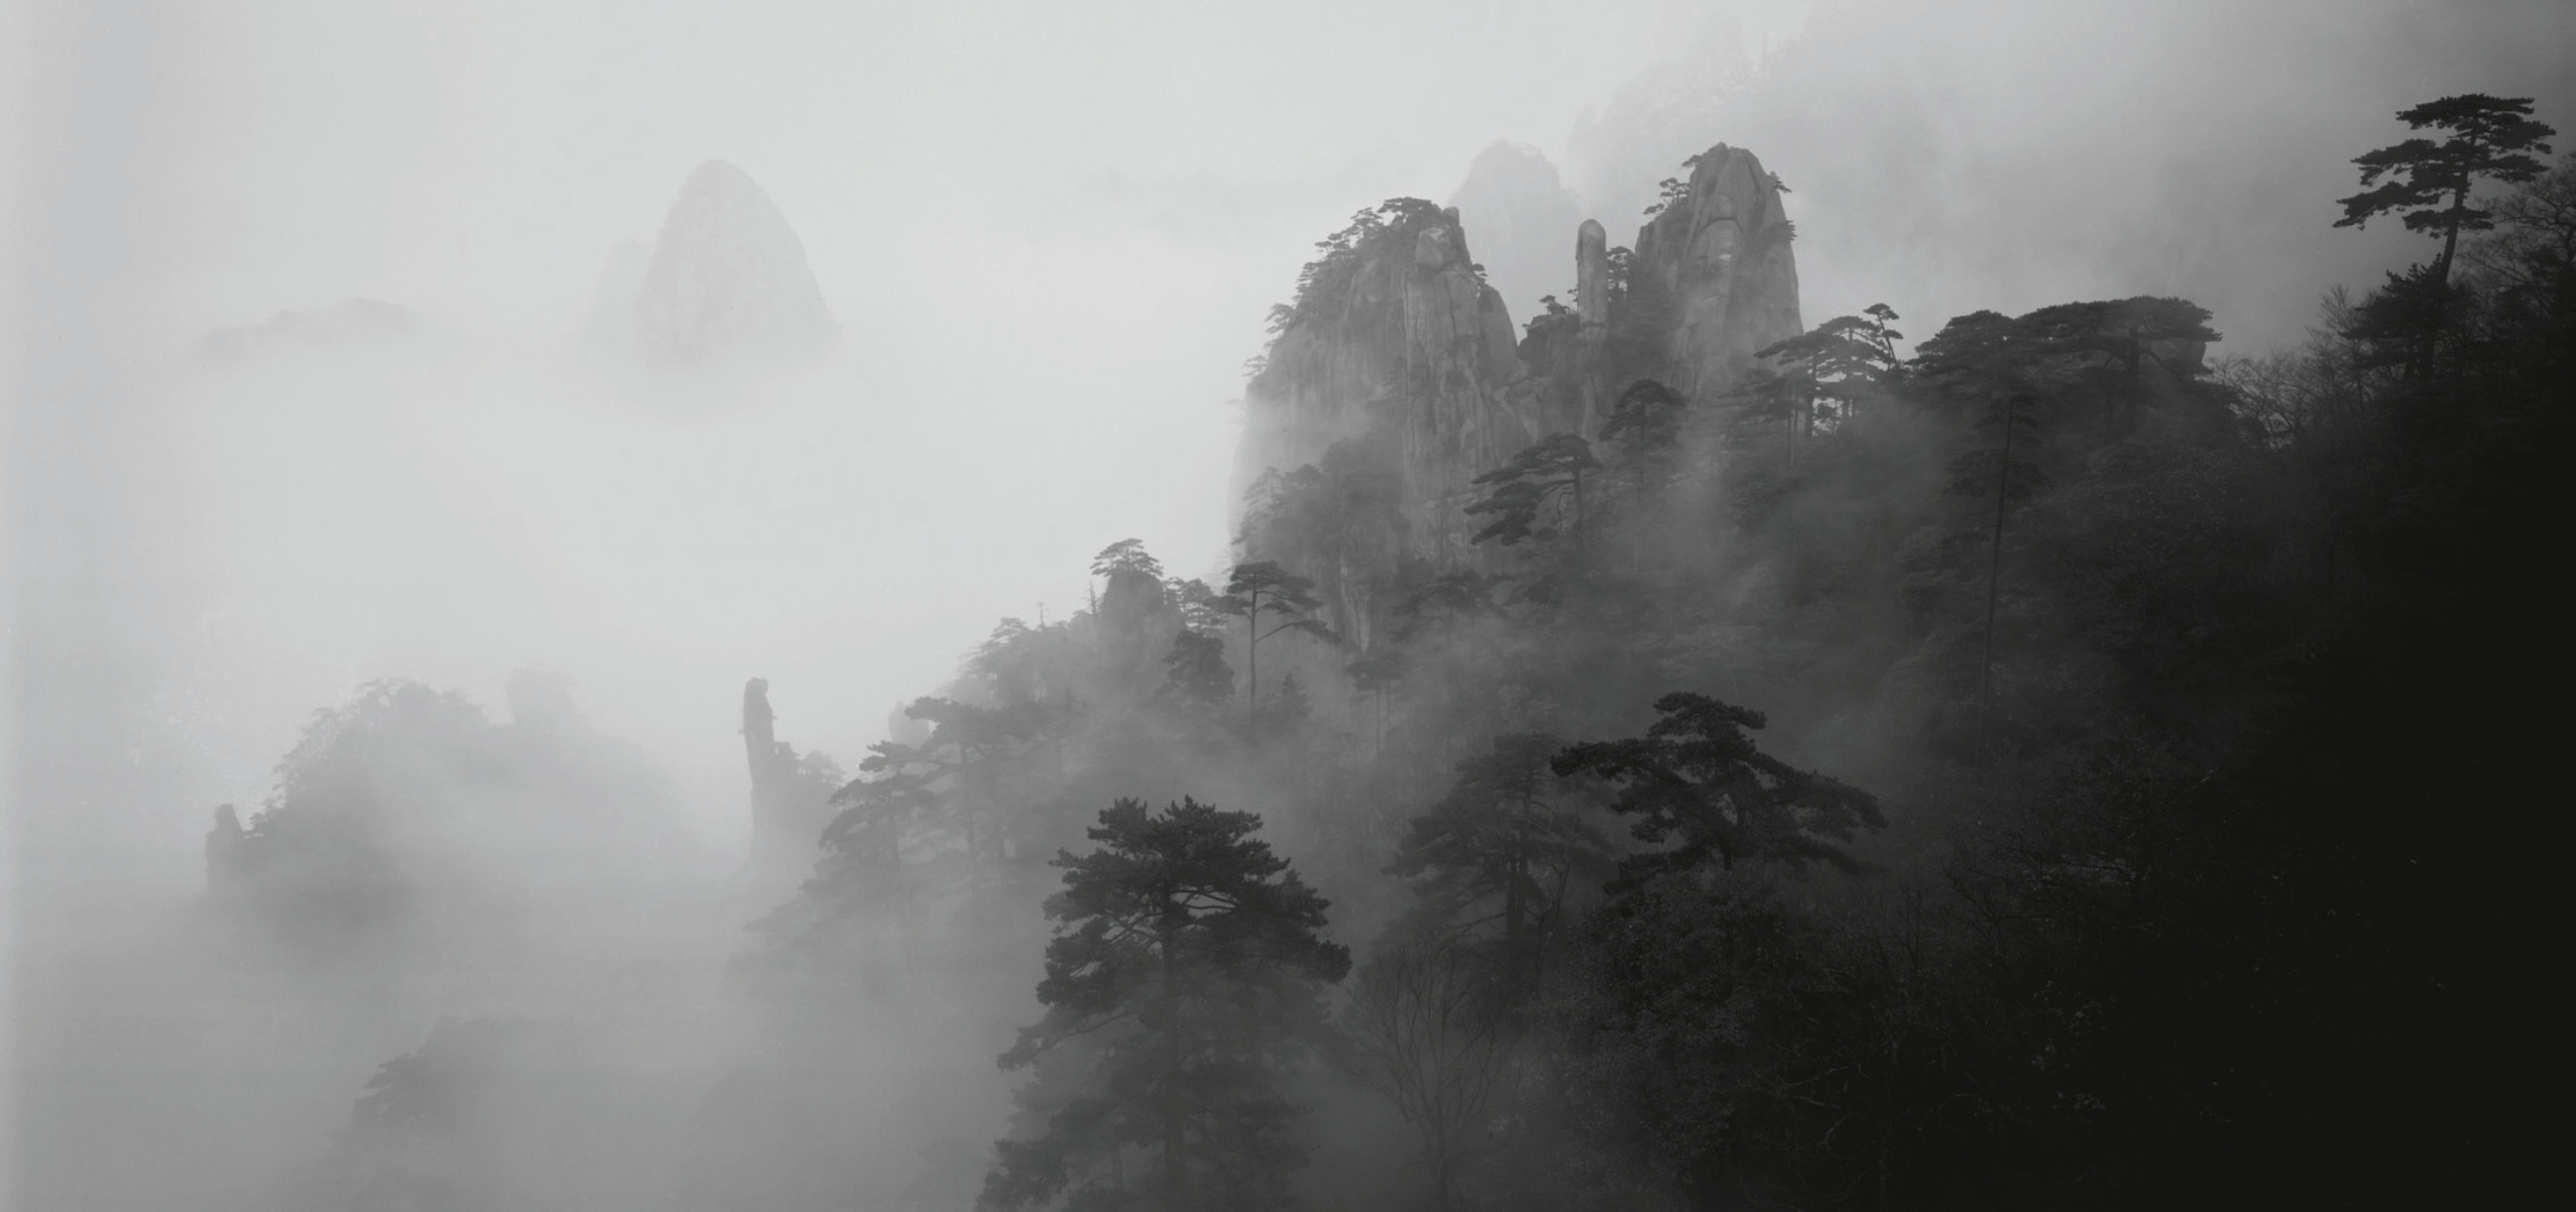 North sea in mist, Huangshan, China, 2007